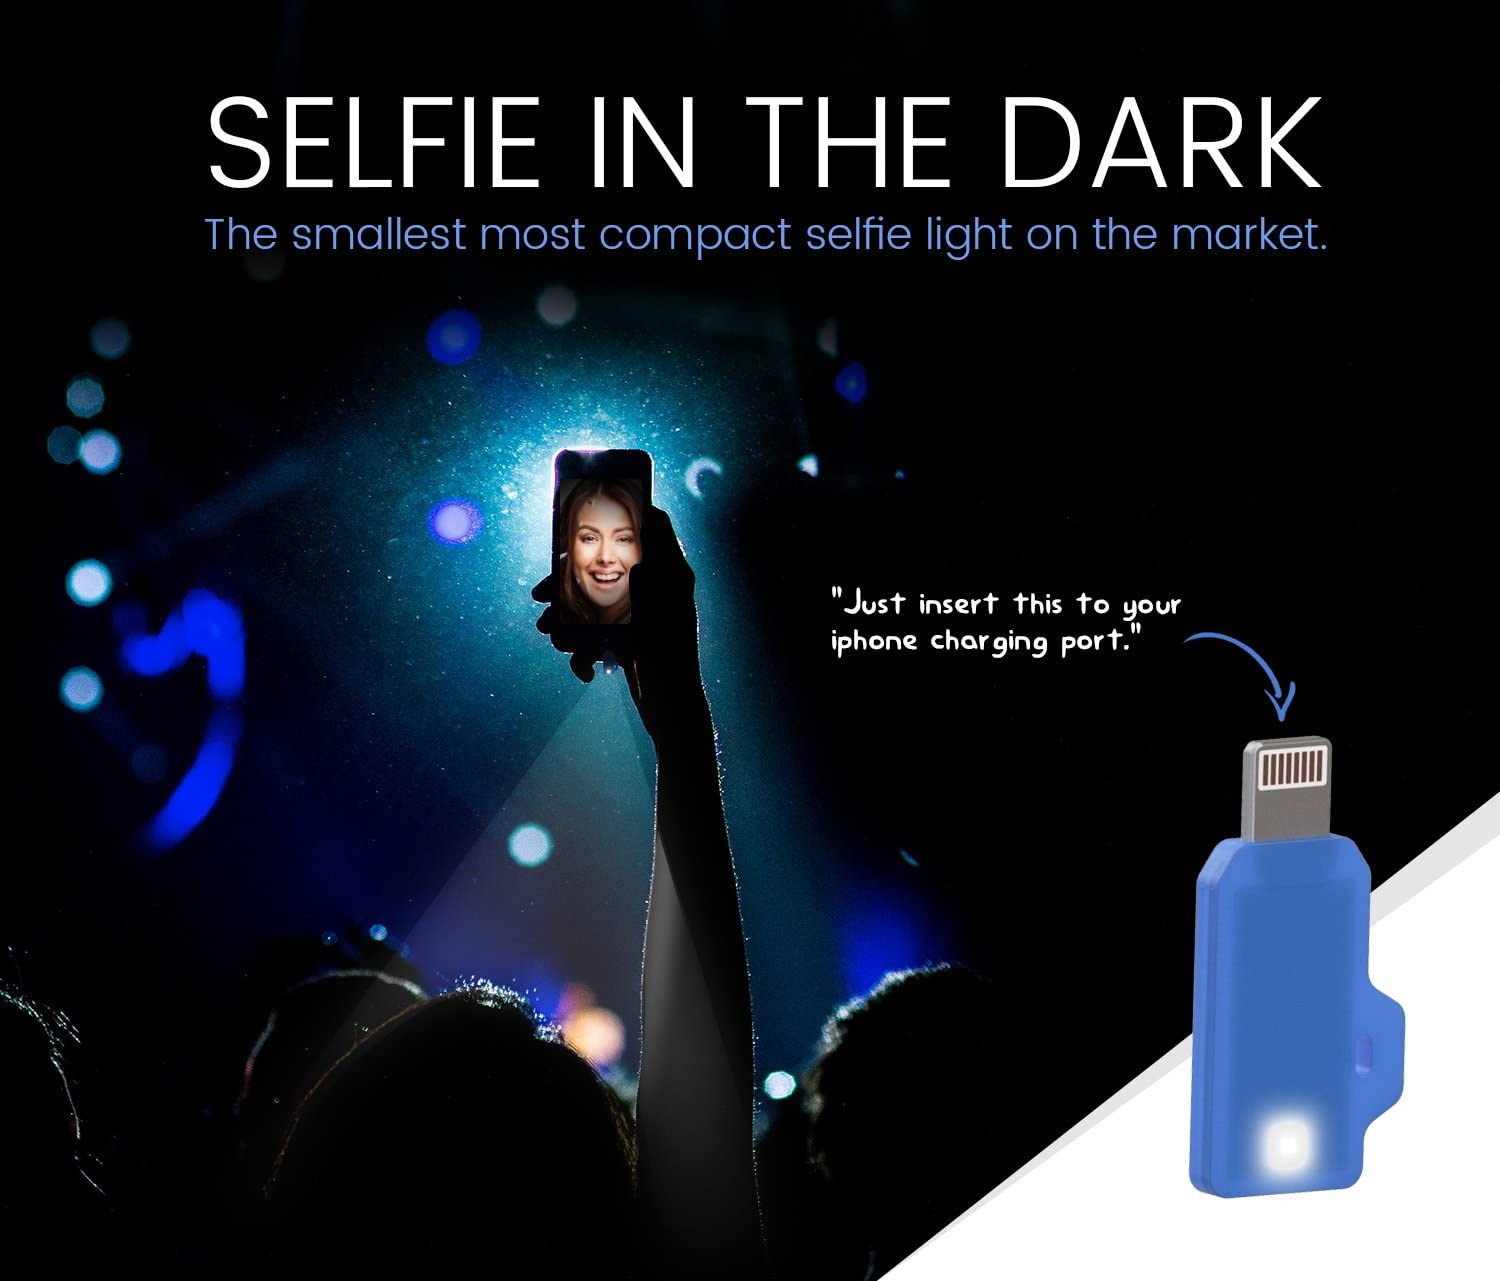 Low Light Photography iPhone Charging Port Powered iPhone Selfie Light Nighttime Video Chatting